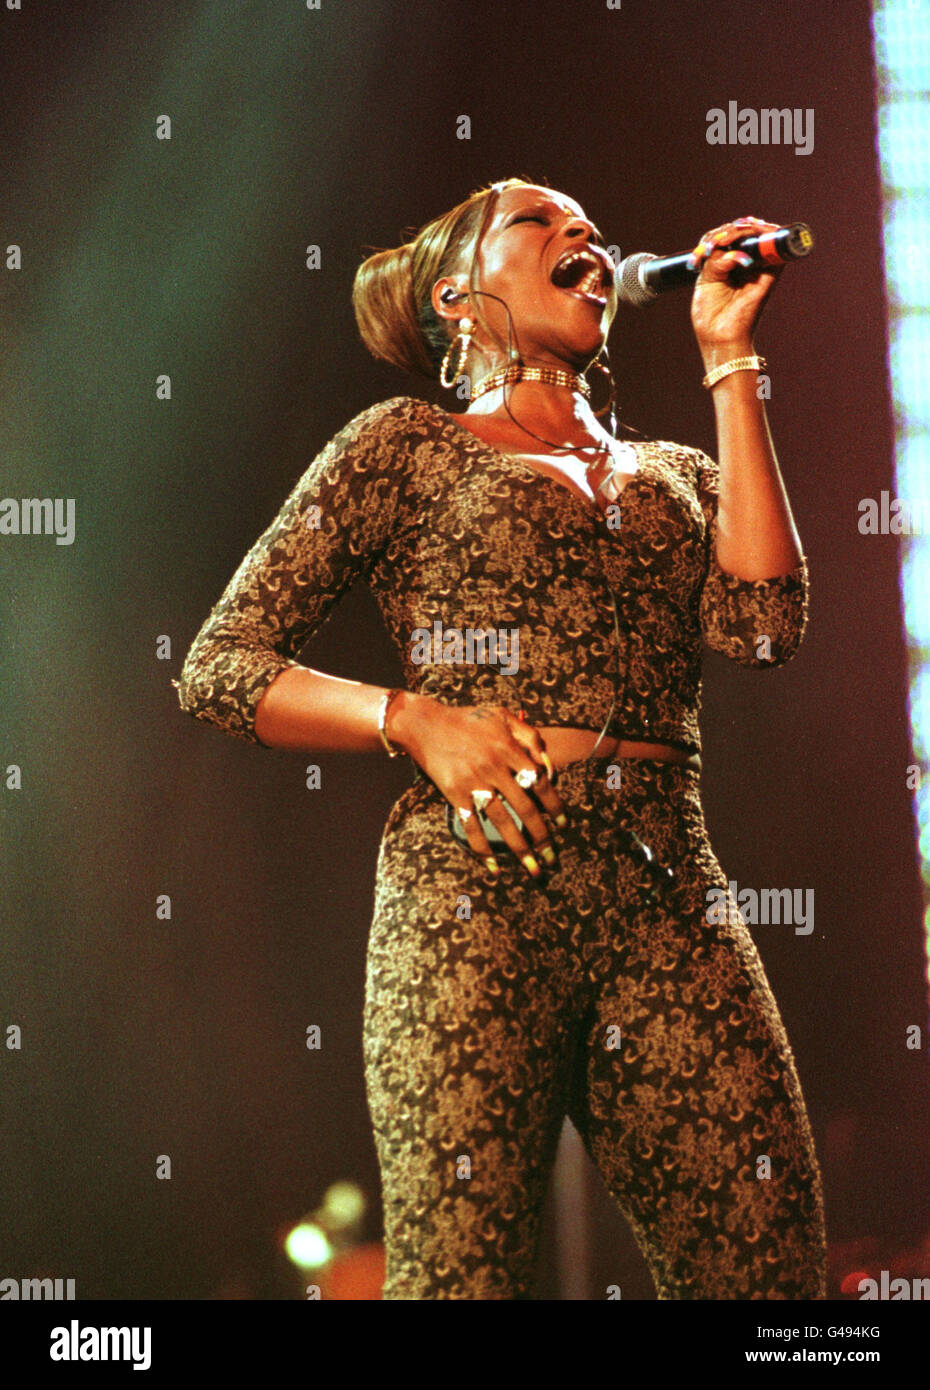 Mary J. Blige performs at the Sounds and Visions concert at Wembley Stadium in celebration of the greatest hits - Stock Image